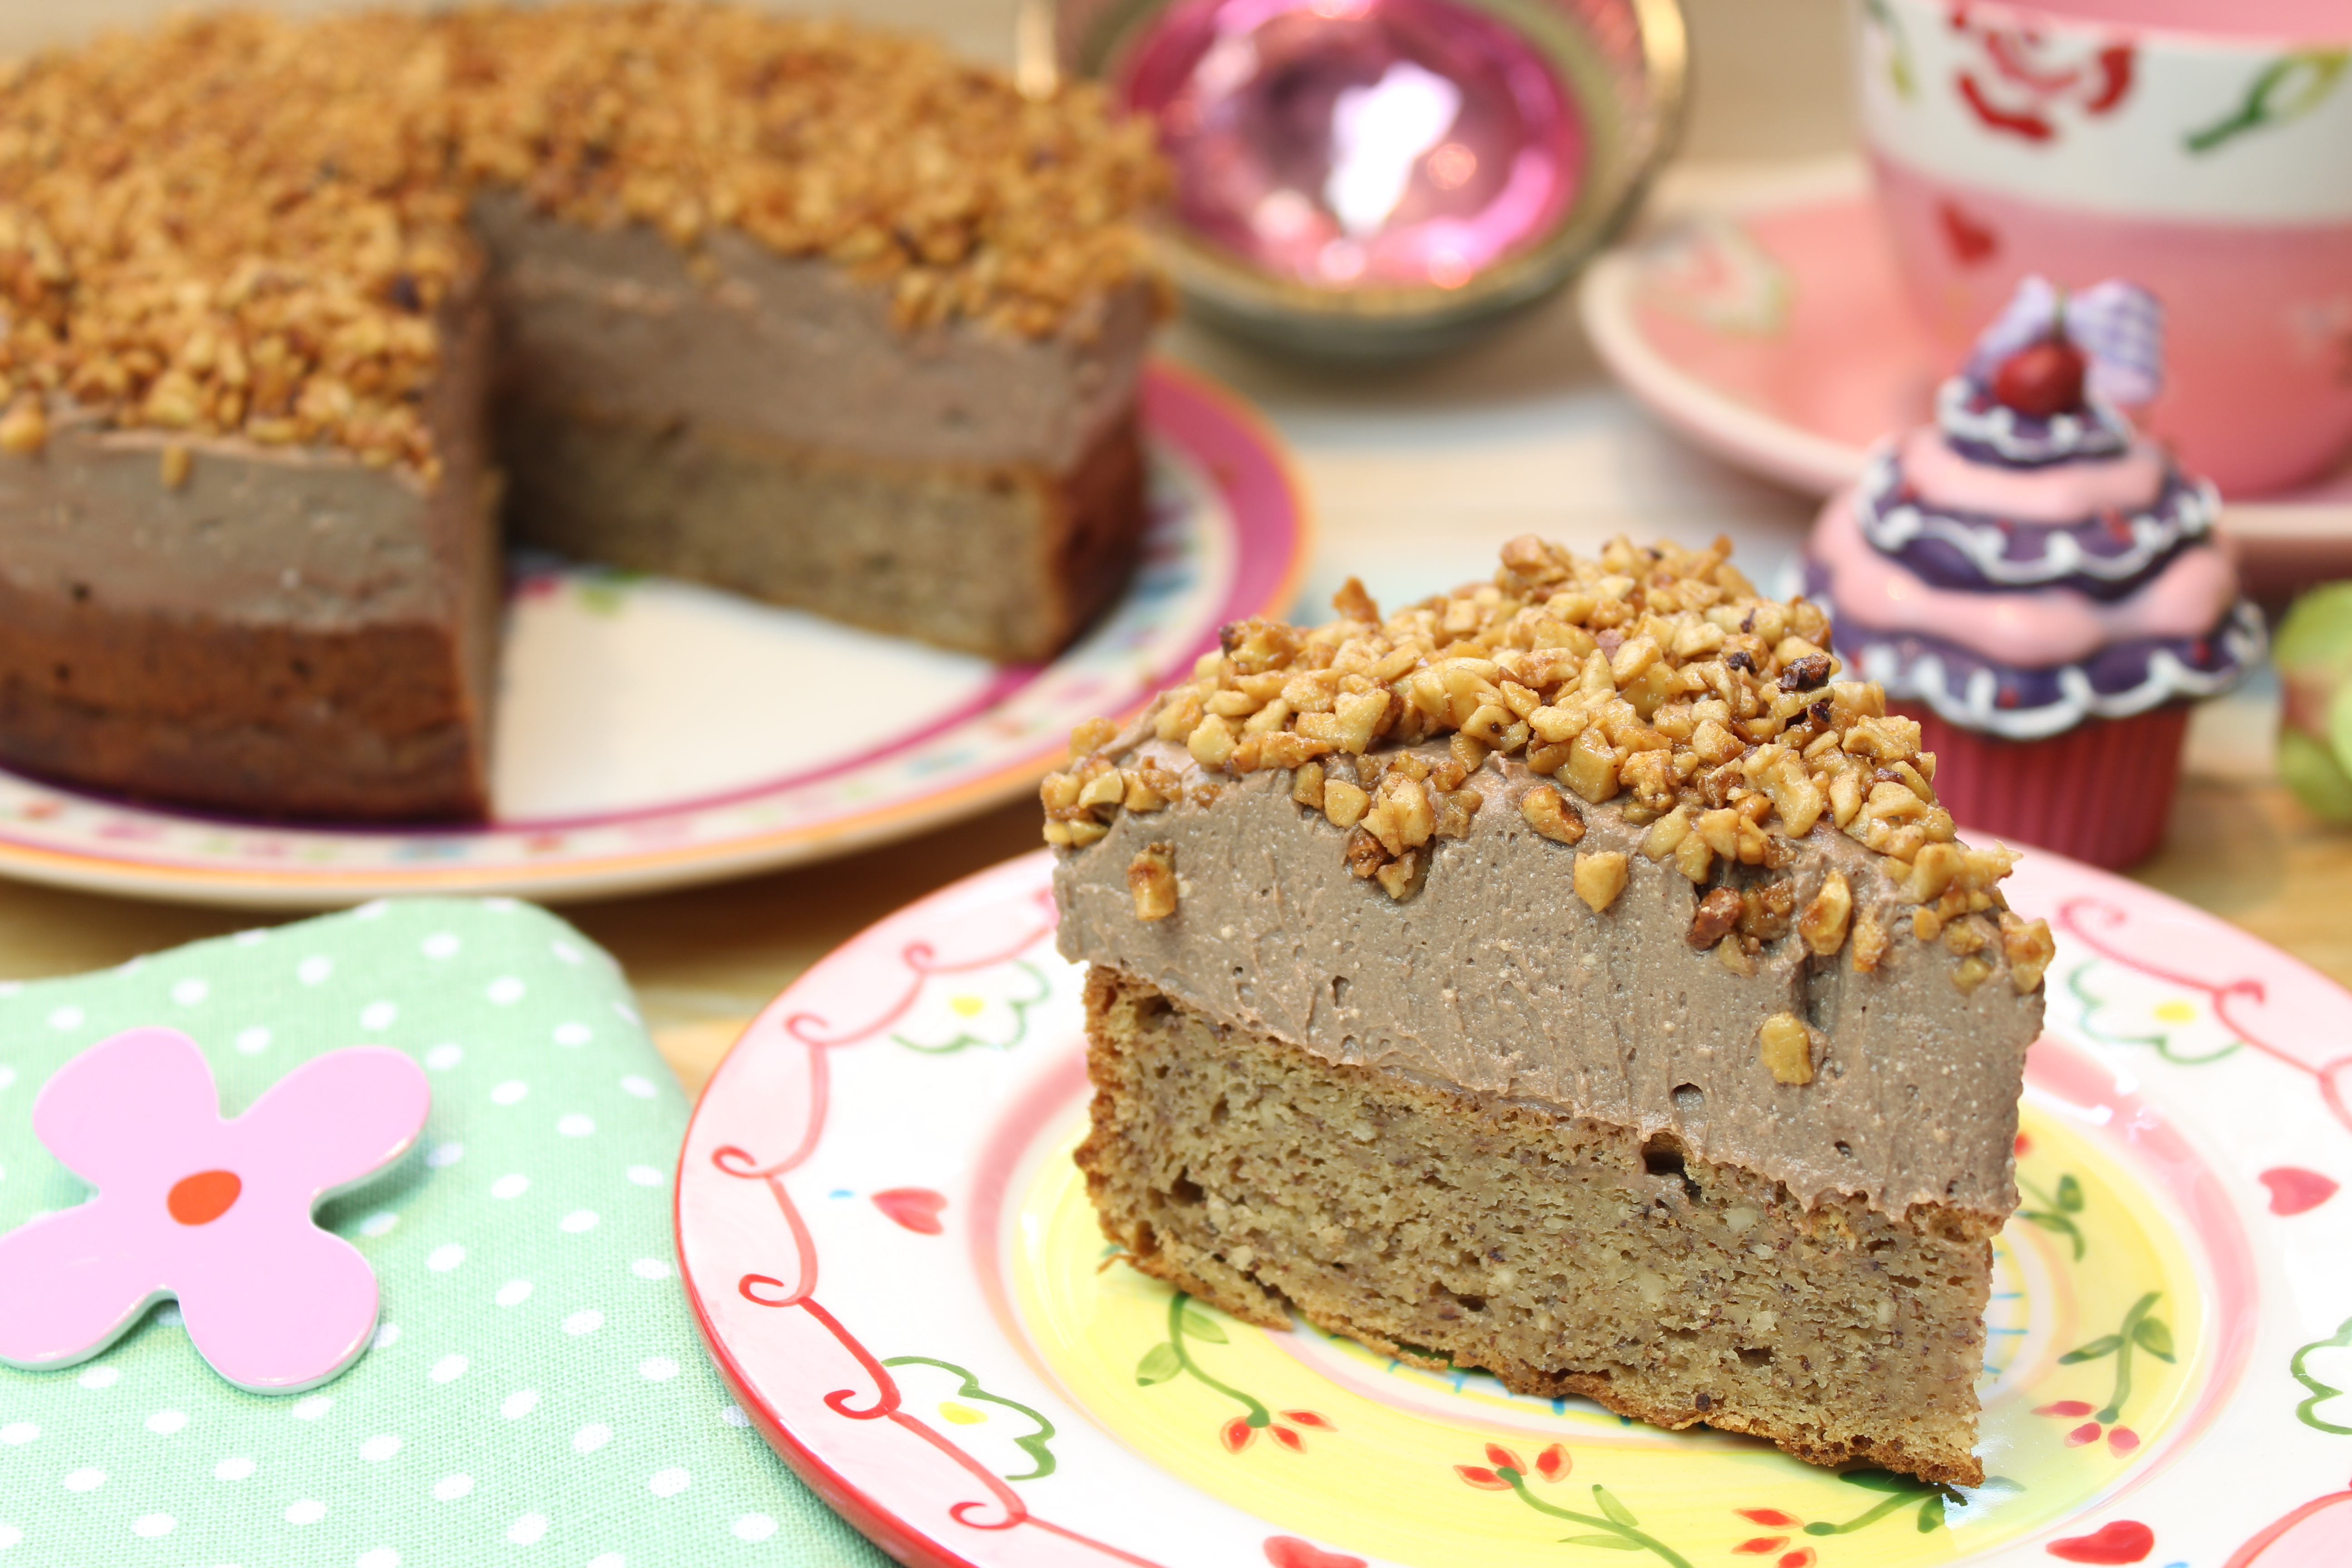 Low-Carb-Giotto-Torte